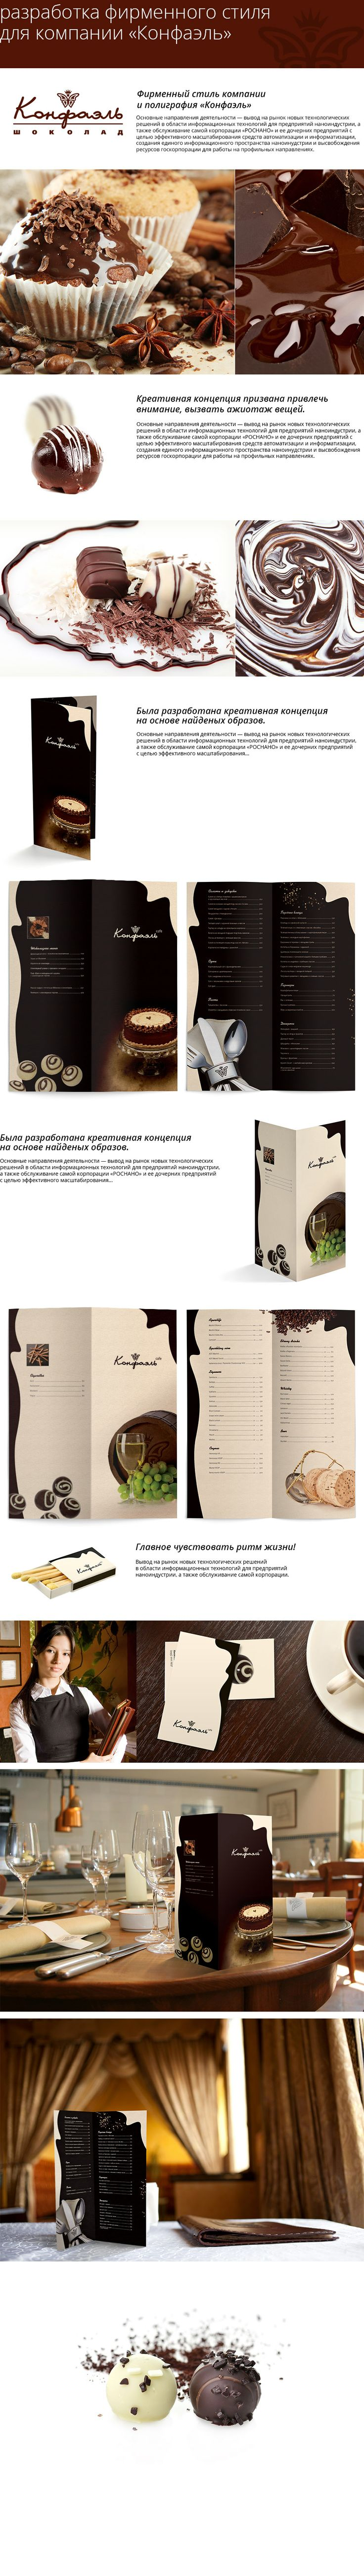 "Creative concept ""black and white"". WORK: identity / print design / photography  INDUSTRY: cafe, chocolate boutique"